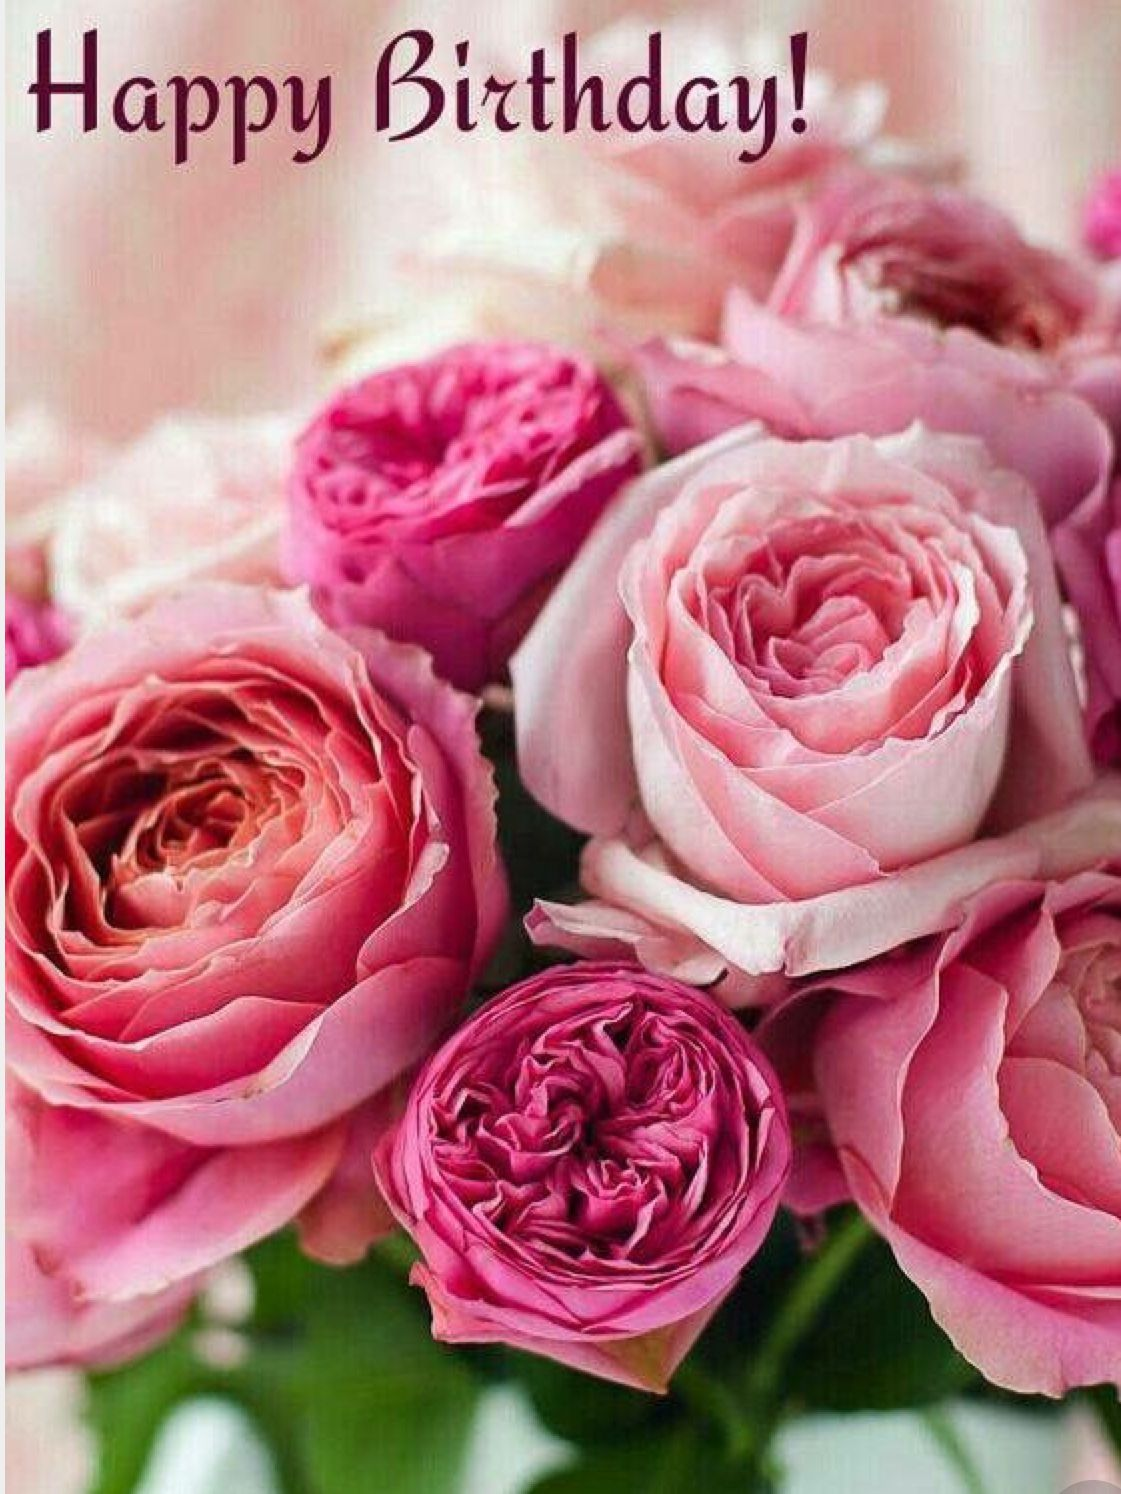 Pin By Paula Simon On Greetings From Me Birthday Wishes Flowers